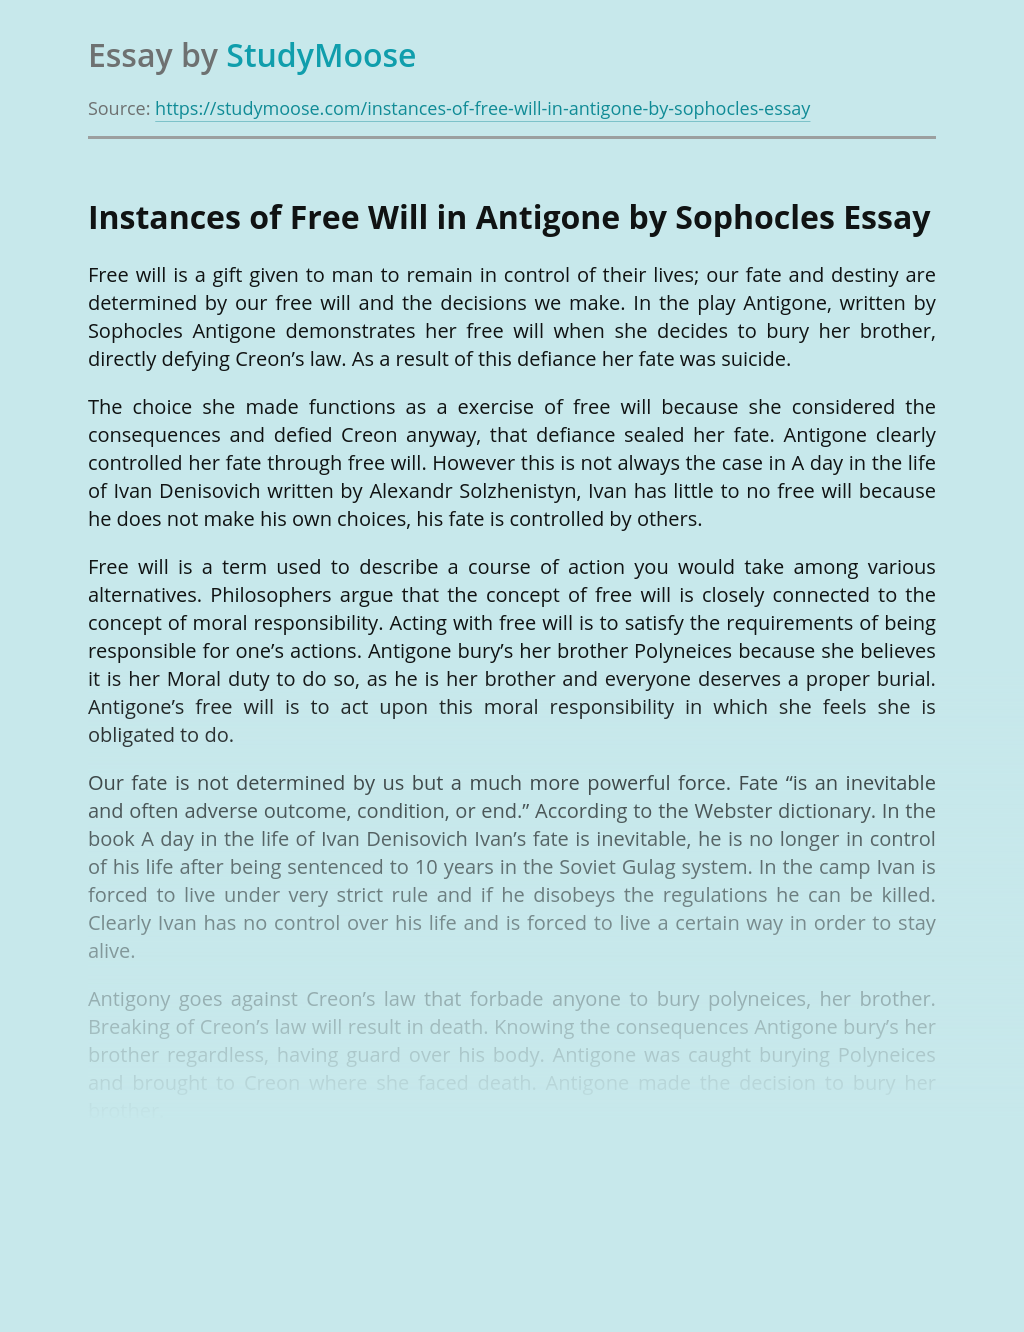 Instances of Free Will in Antigone by Sophocles